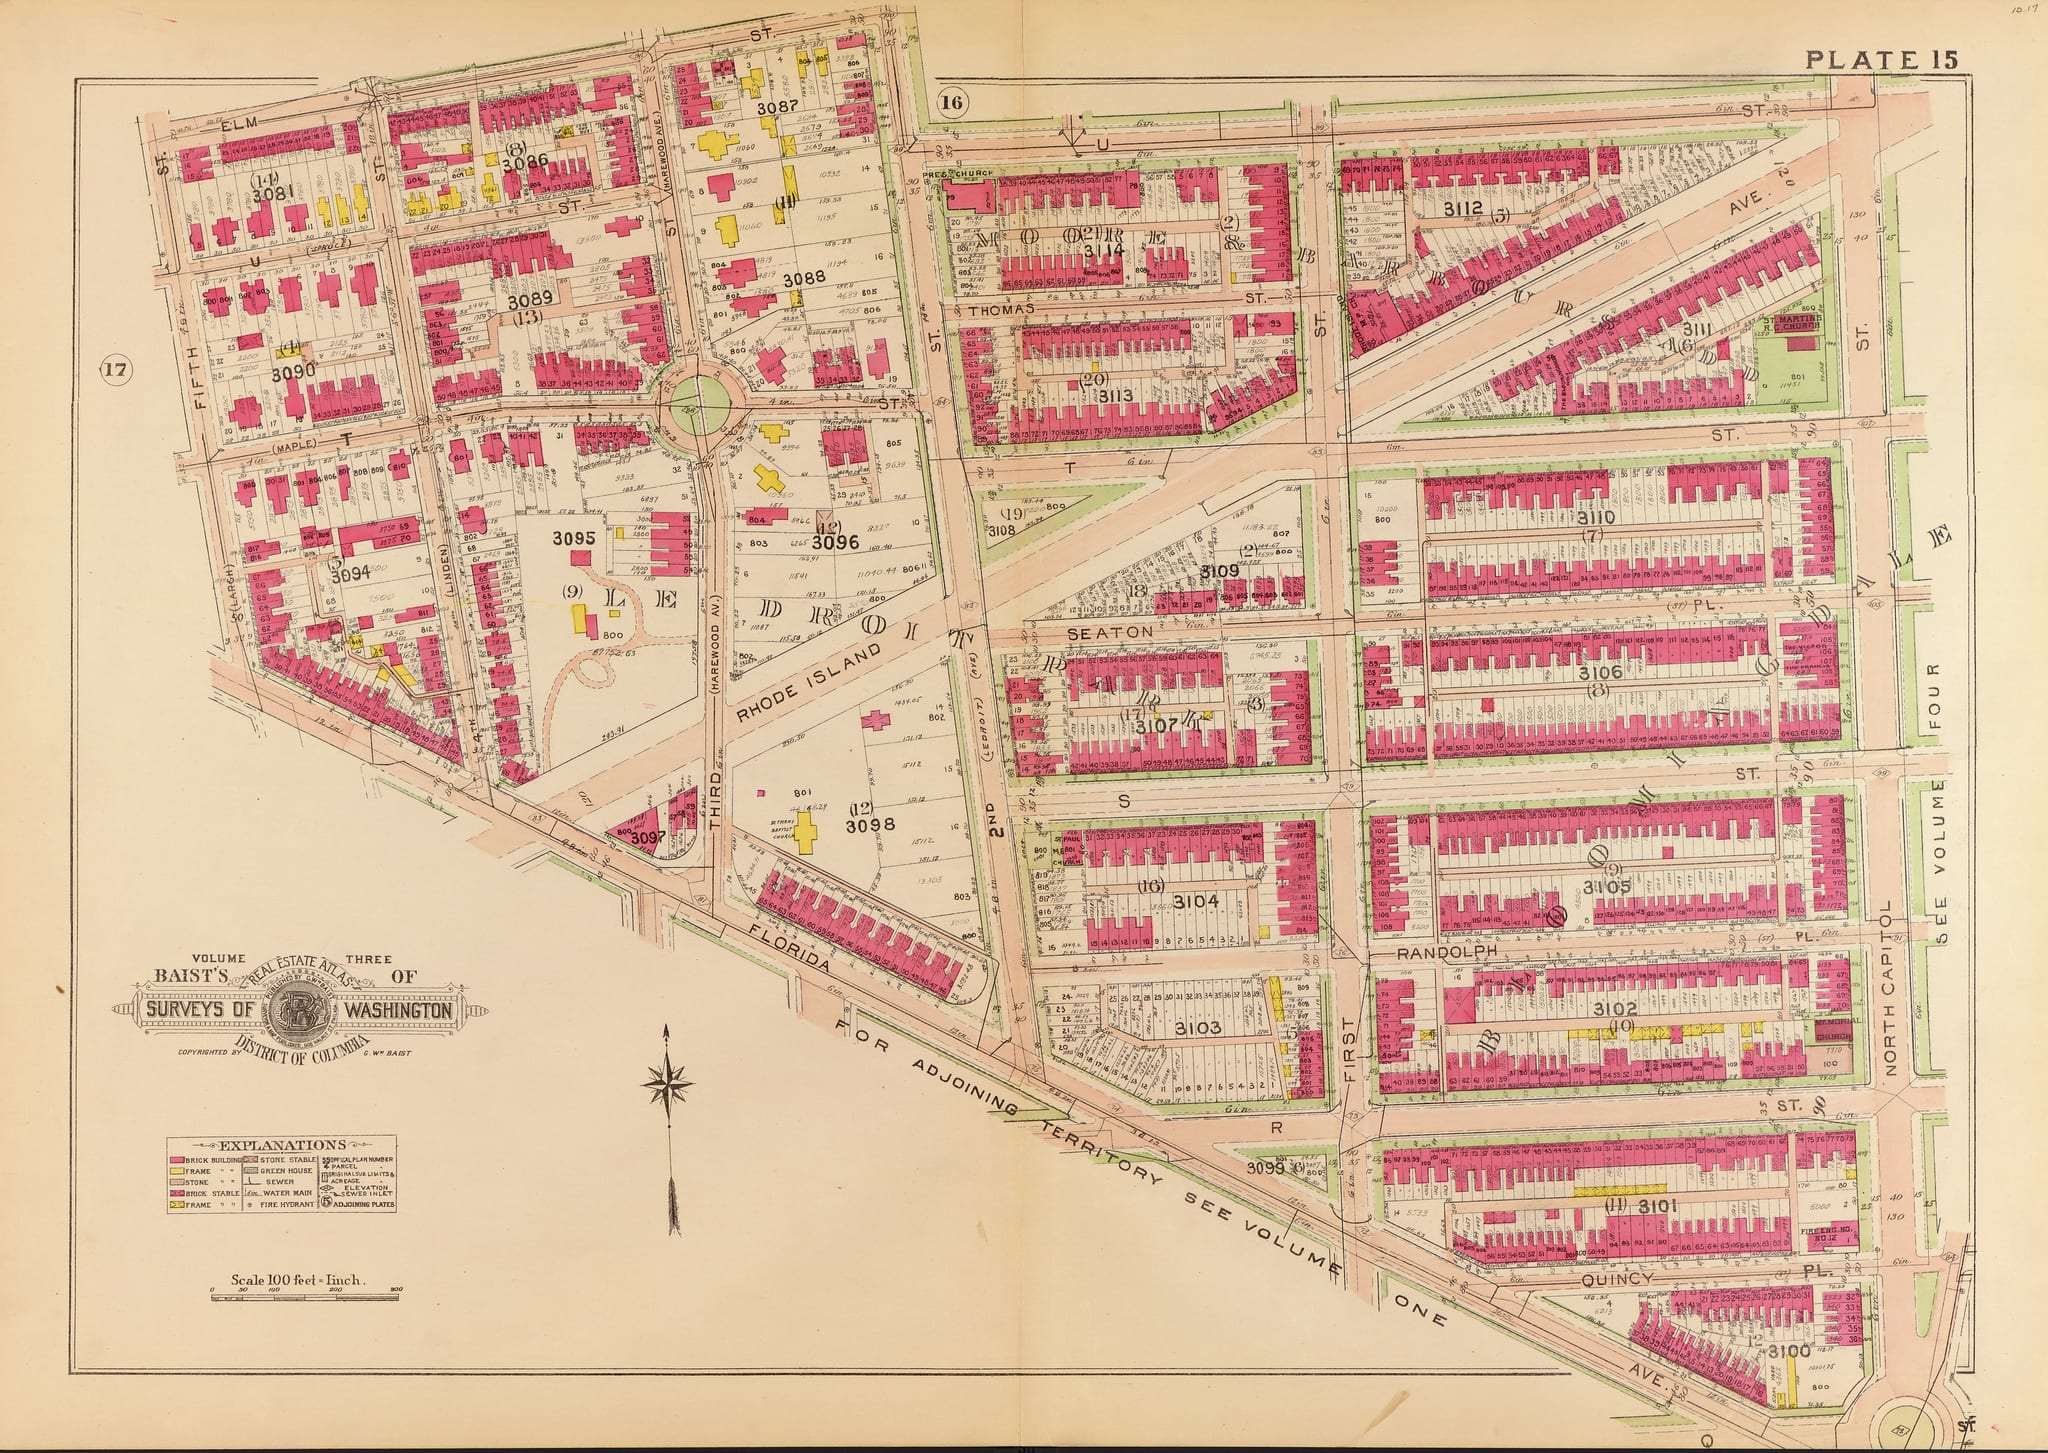 1907 Map of LeDroit Park and Bloomingdale